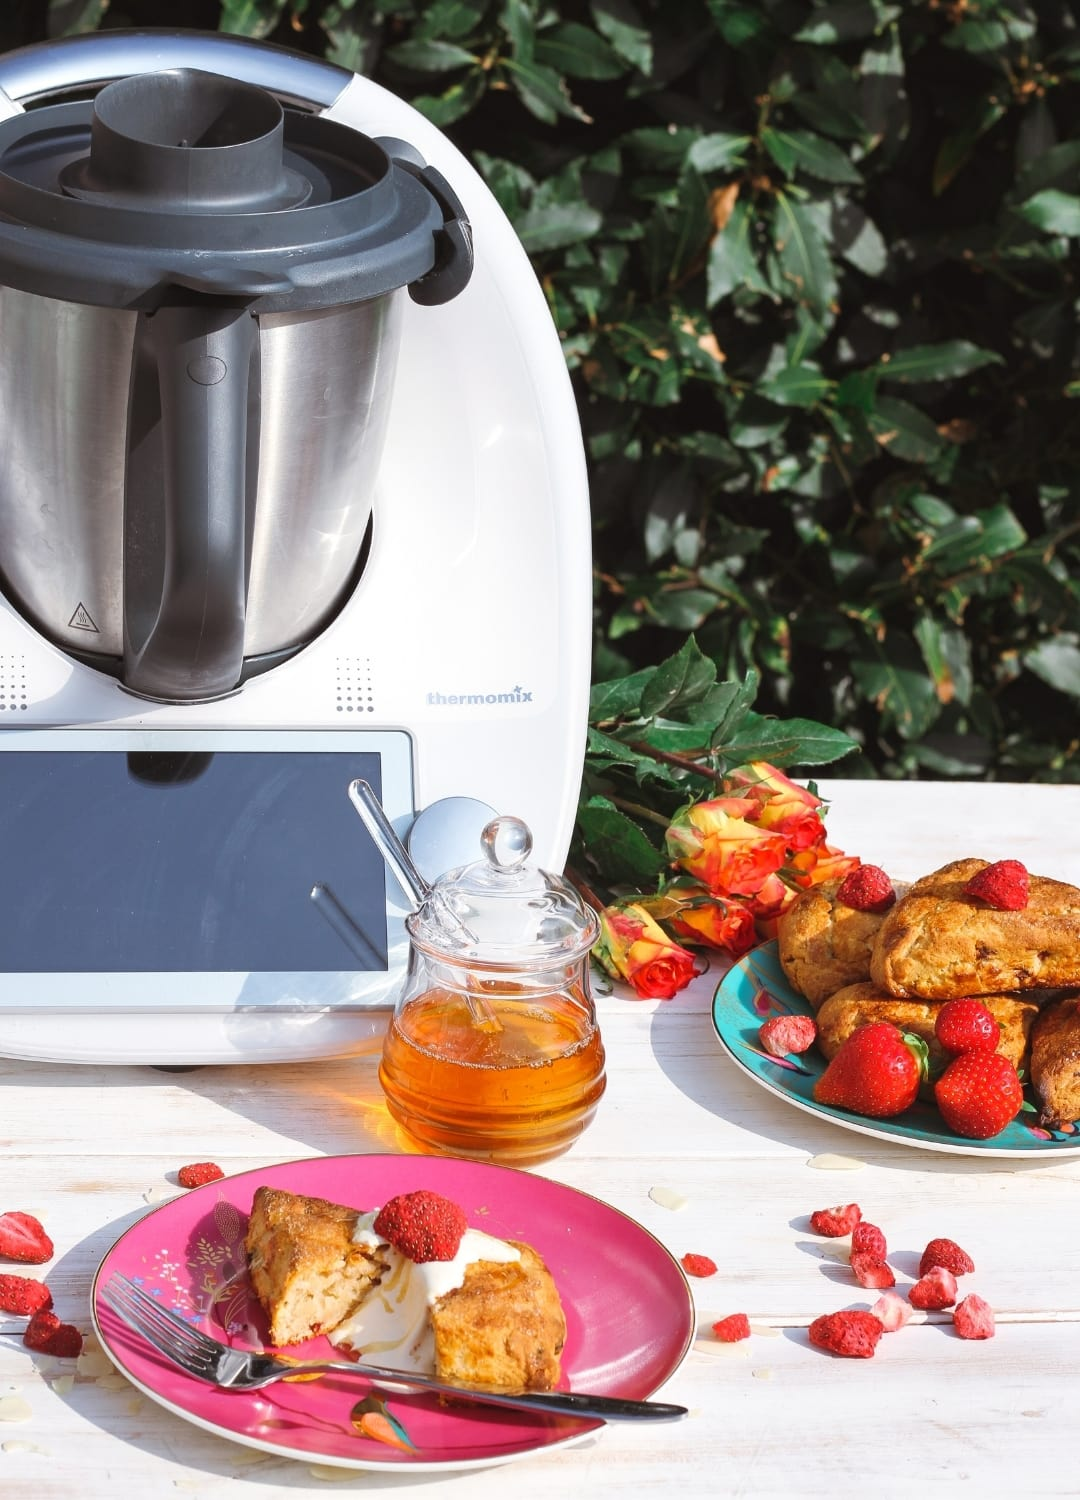 Thermomix and Strawberry Scones